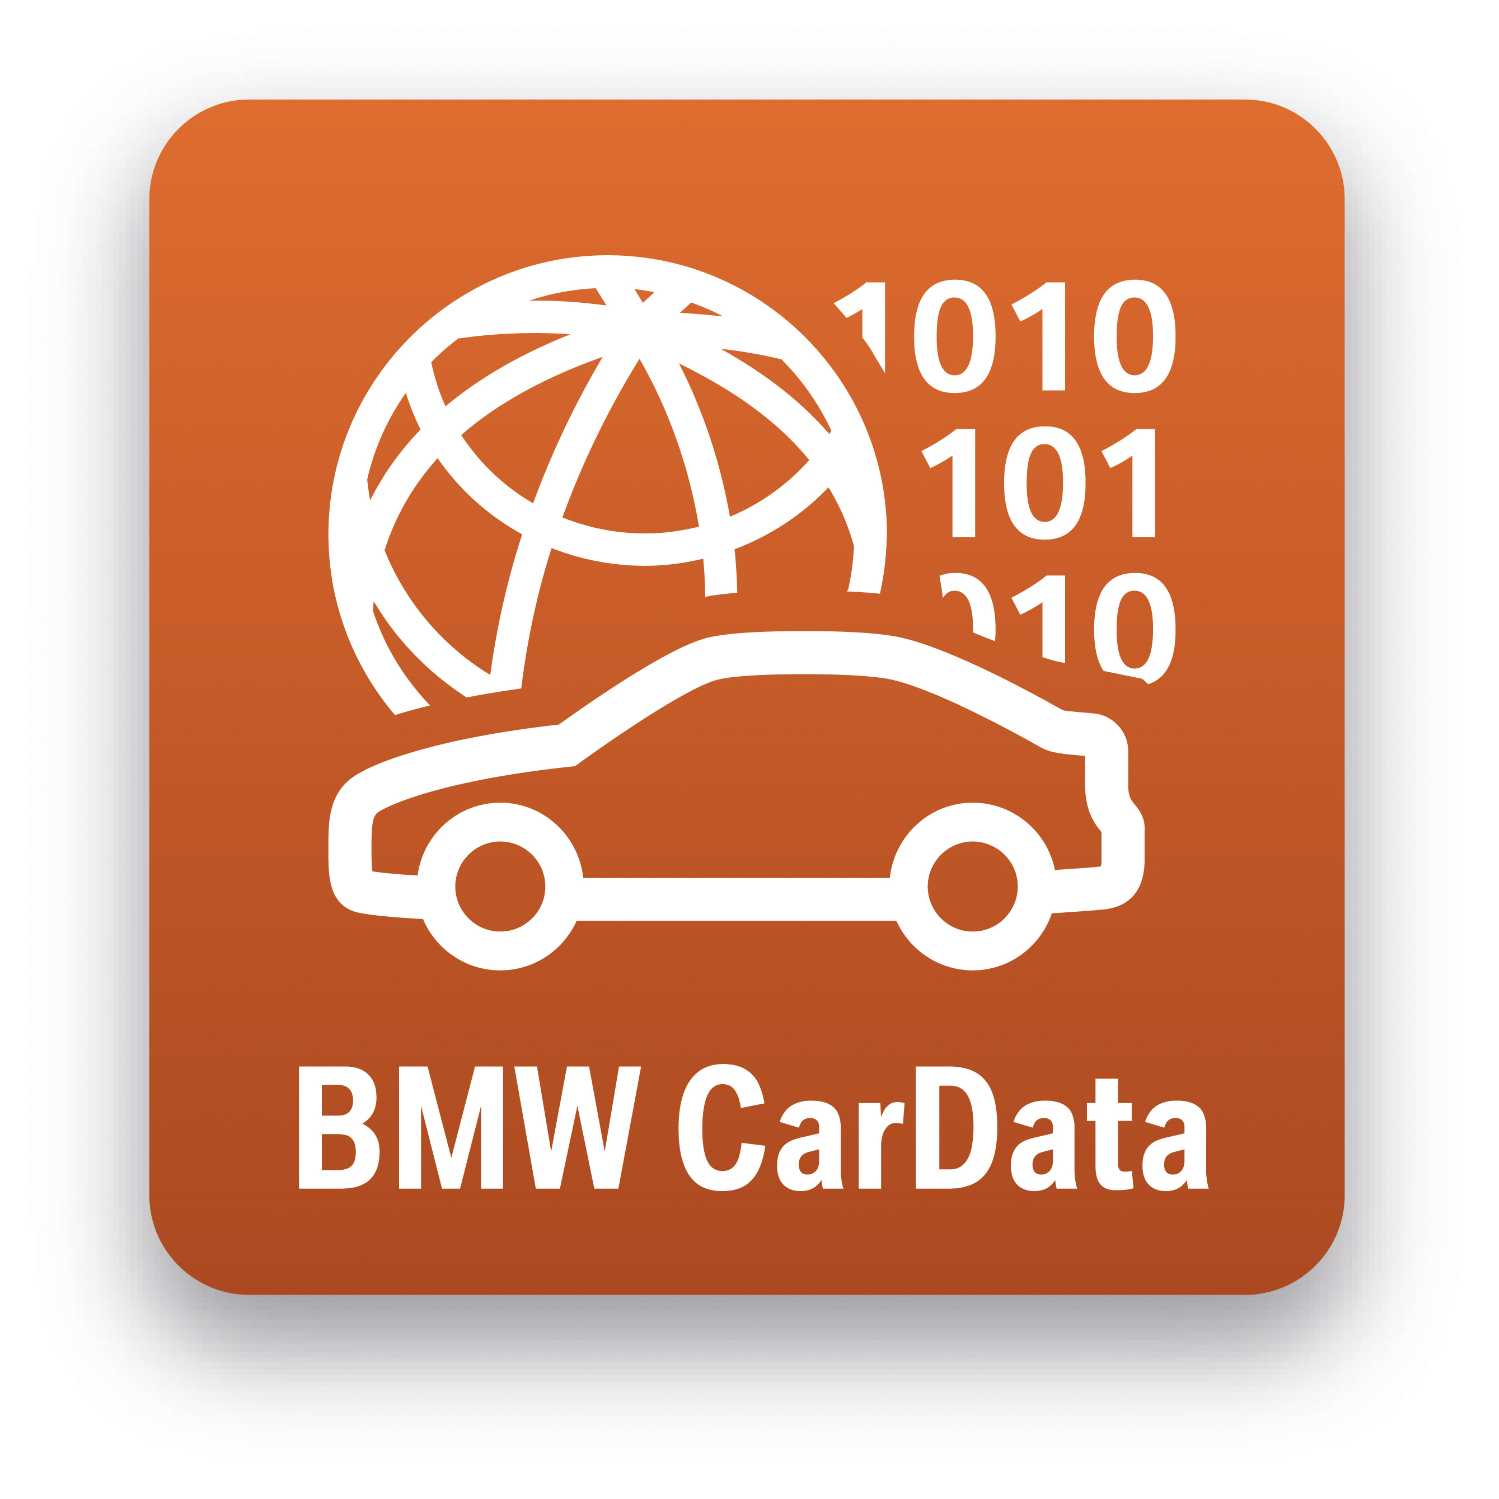 Bmw Group Launches Bmw Cardata New And Innovative Services For Customers 05 2017